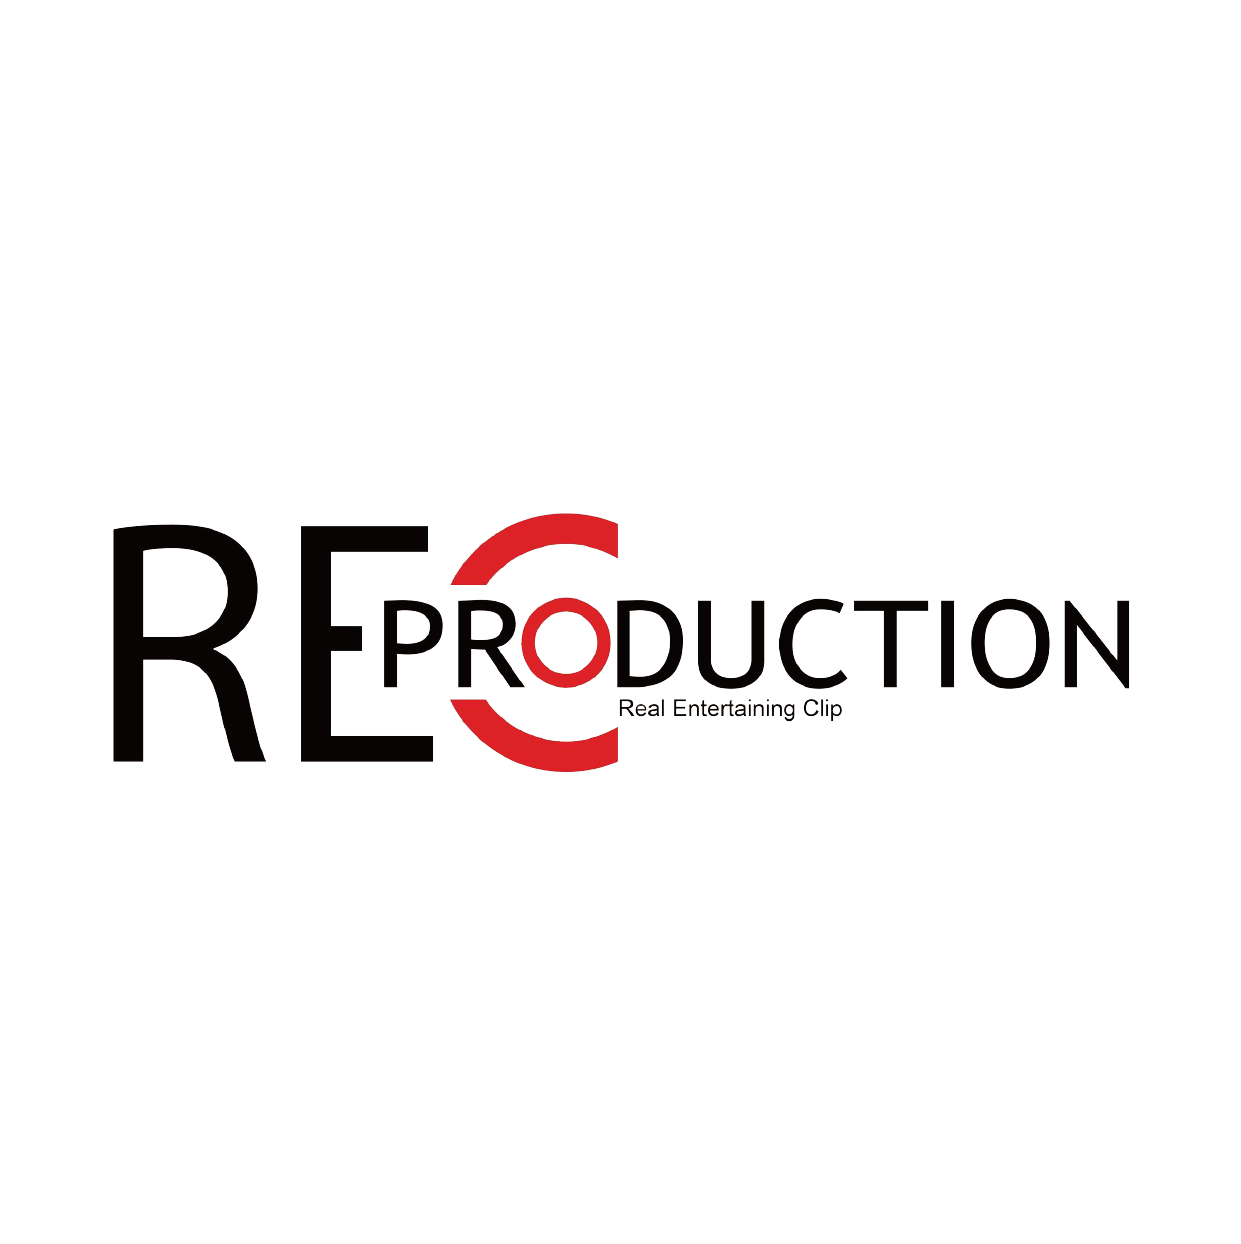 RECProduction ロゴ